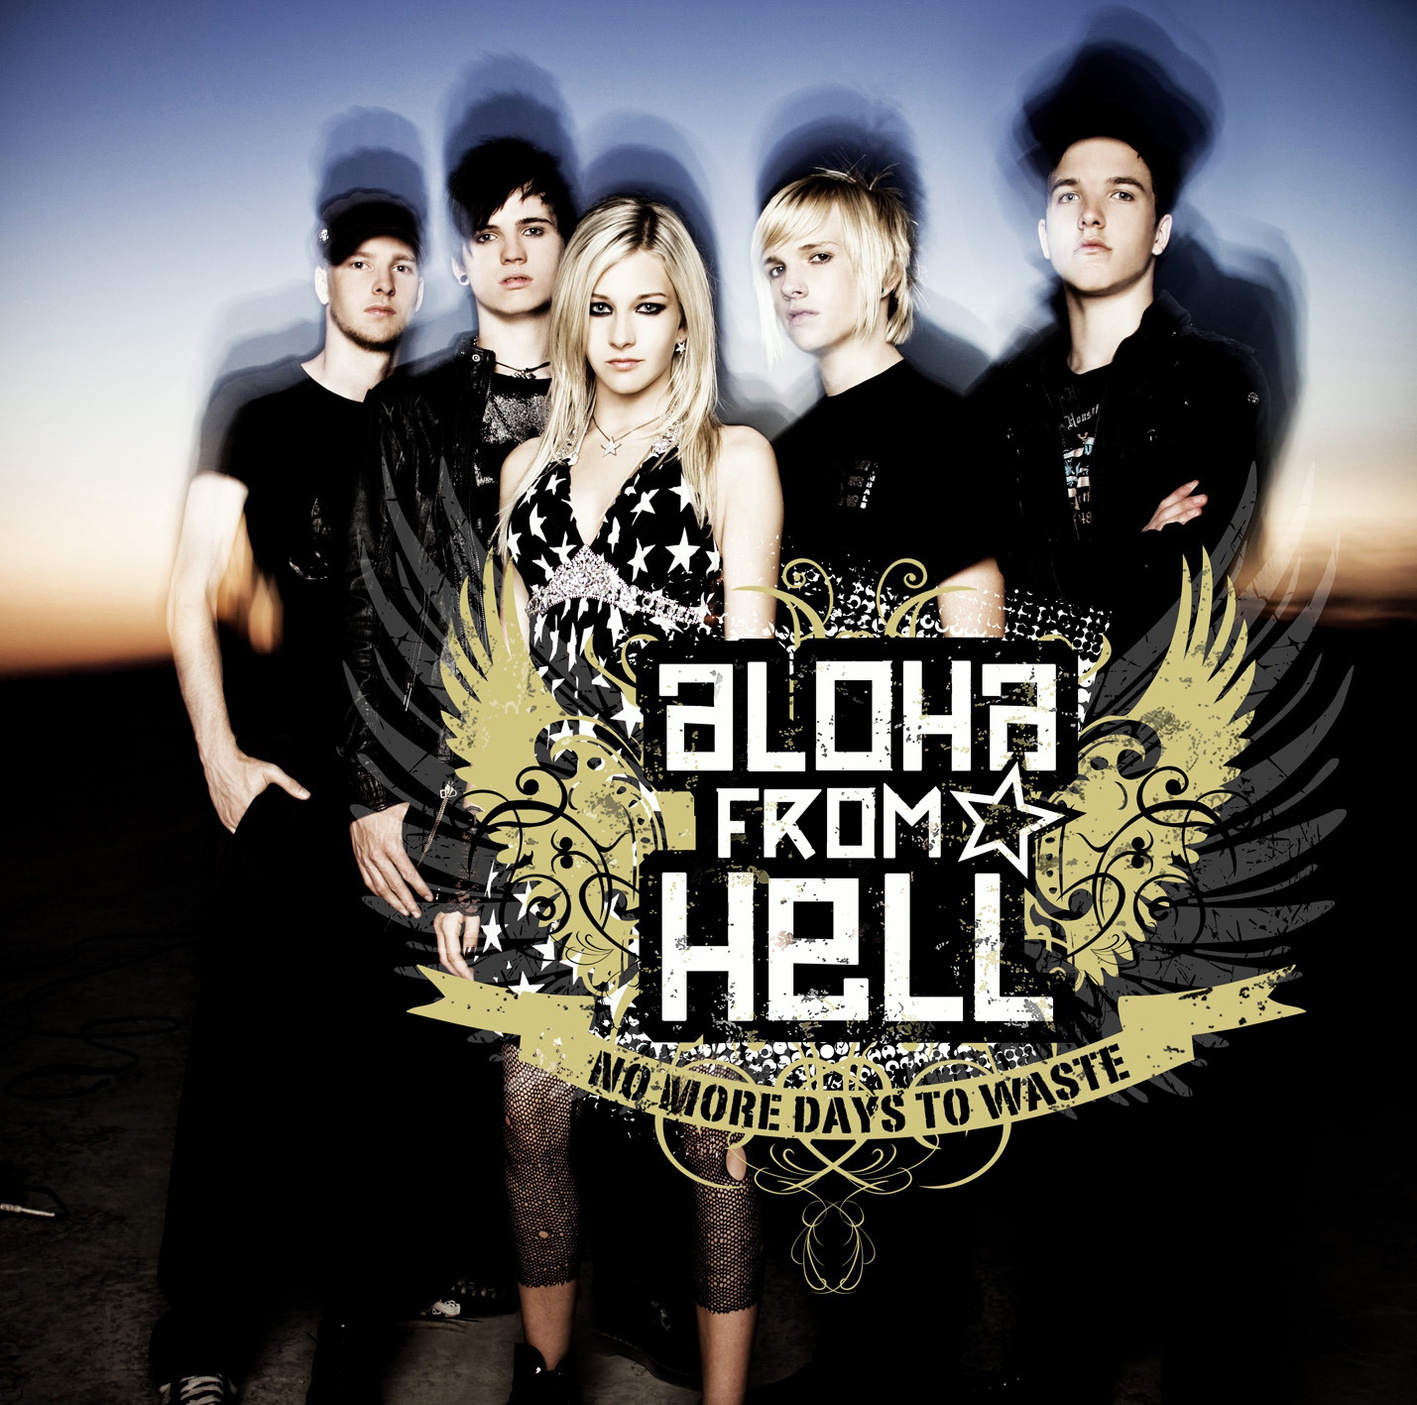 Aloha from Hell - No More Days To Waste - Ltd. Fan-Edition im Digipak mit extra Poster + erweitertem Tracklist